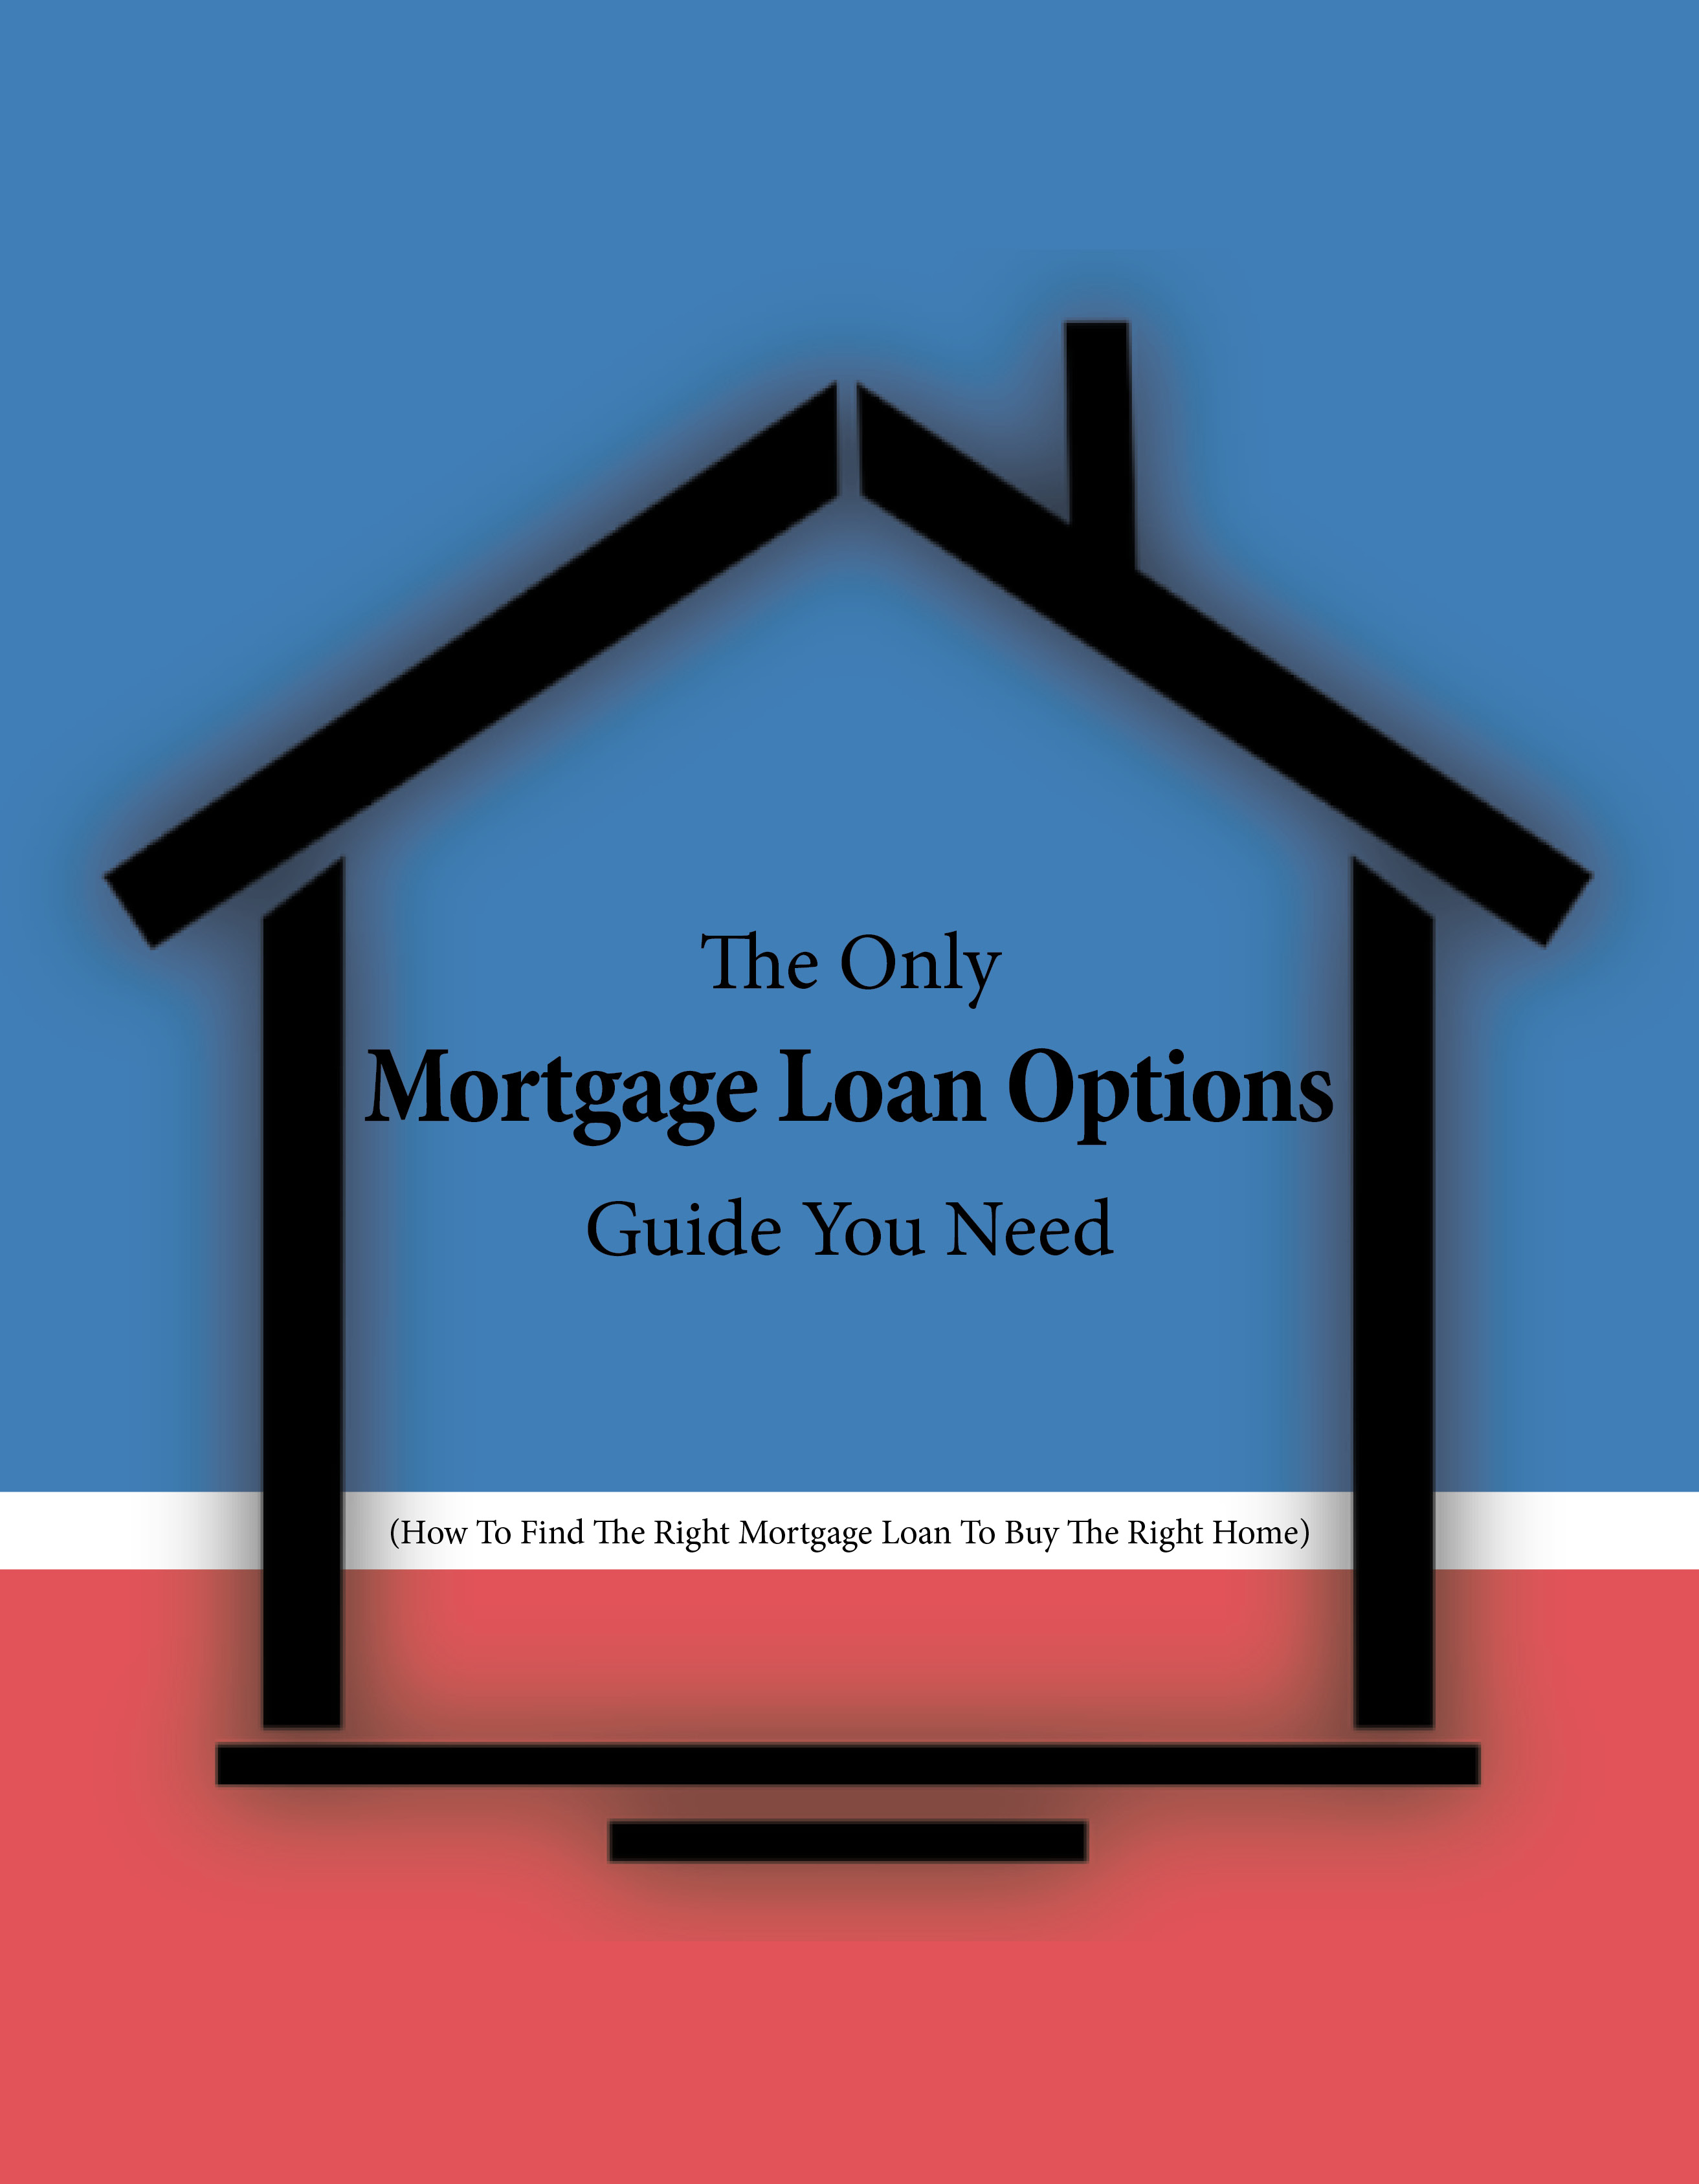 The Only Mortgage Loan Options Guide You Need 174 CTA